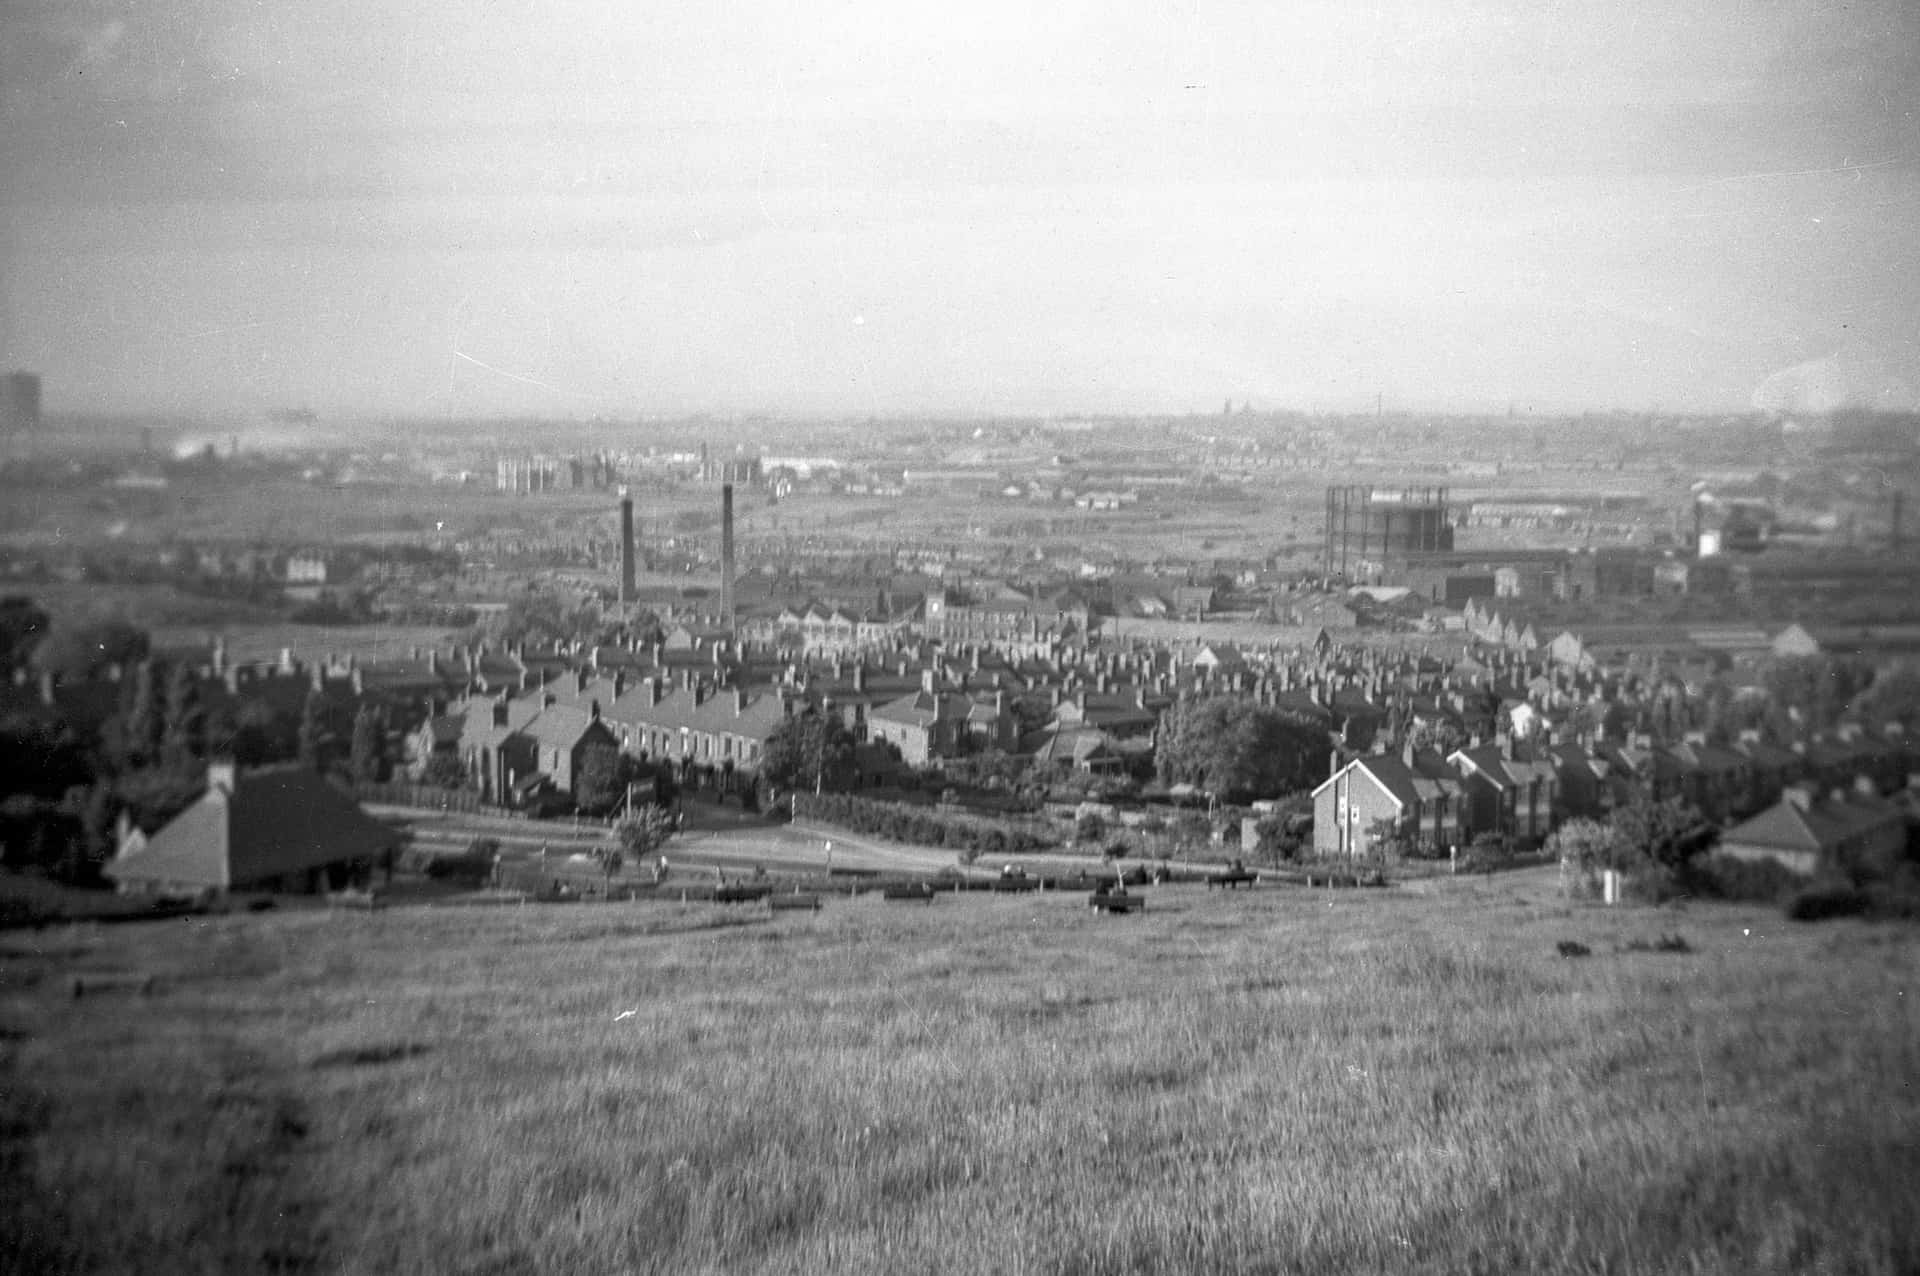 A view across Tividale, West Bromwich and beyond. From the Jim Rippin Collection. Late 1950s